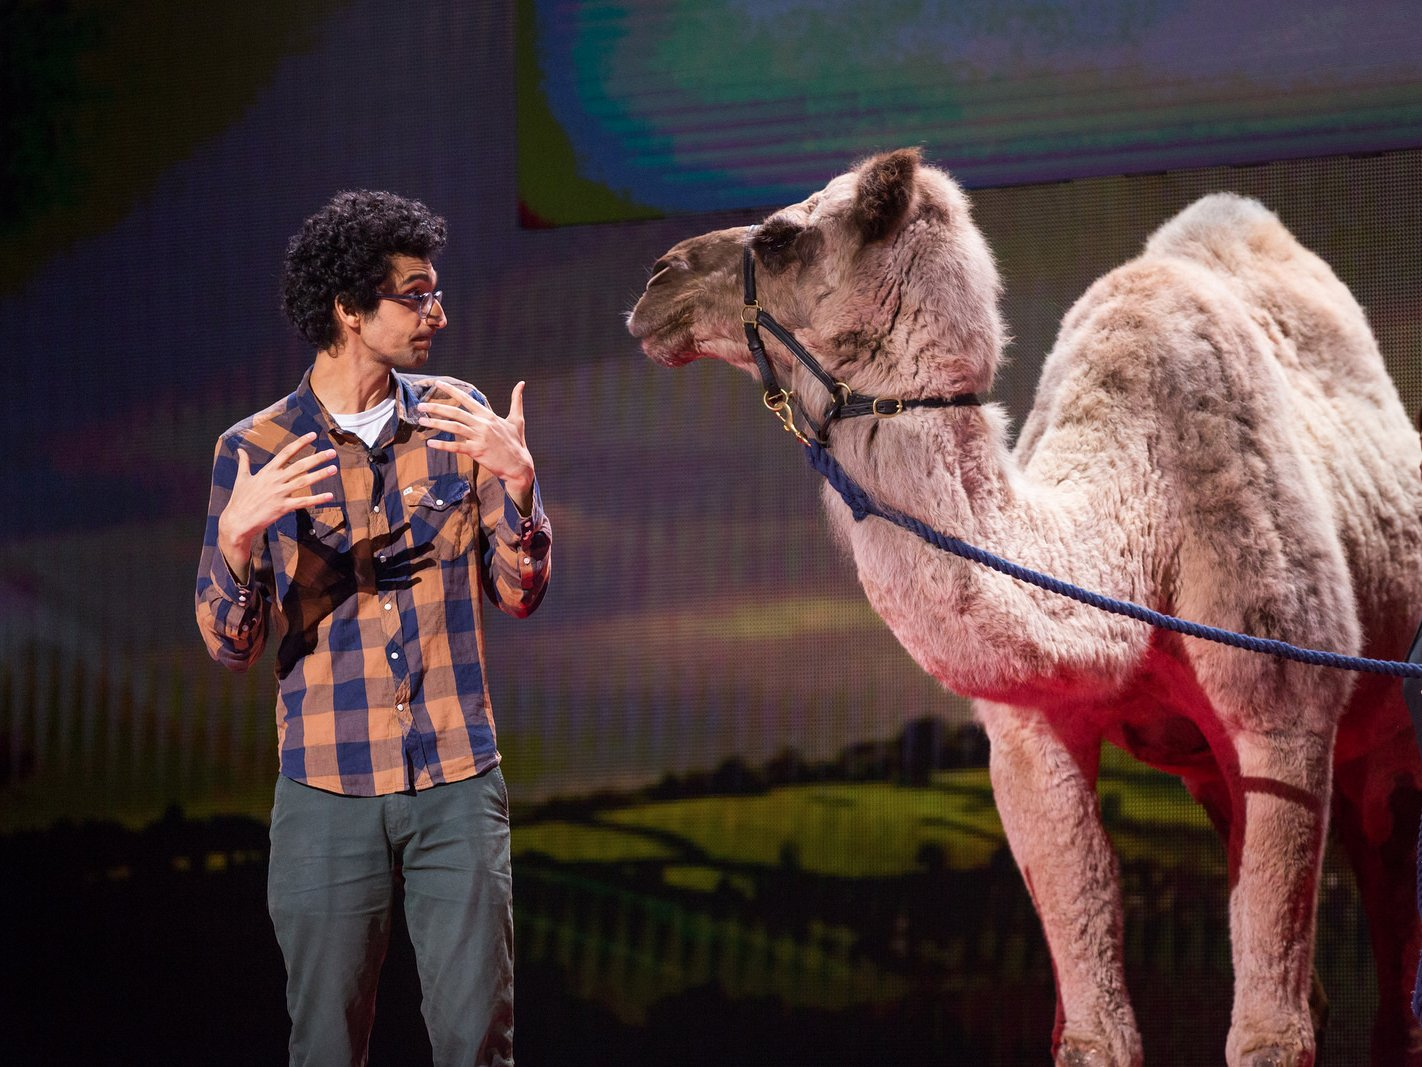 """TED Talk """"You have no idea where camels came from"""" - Latif Nasser"""